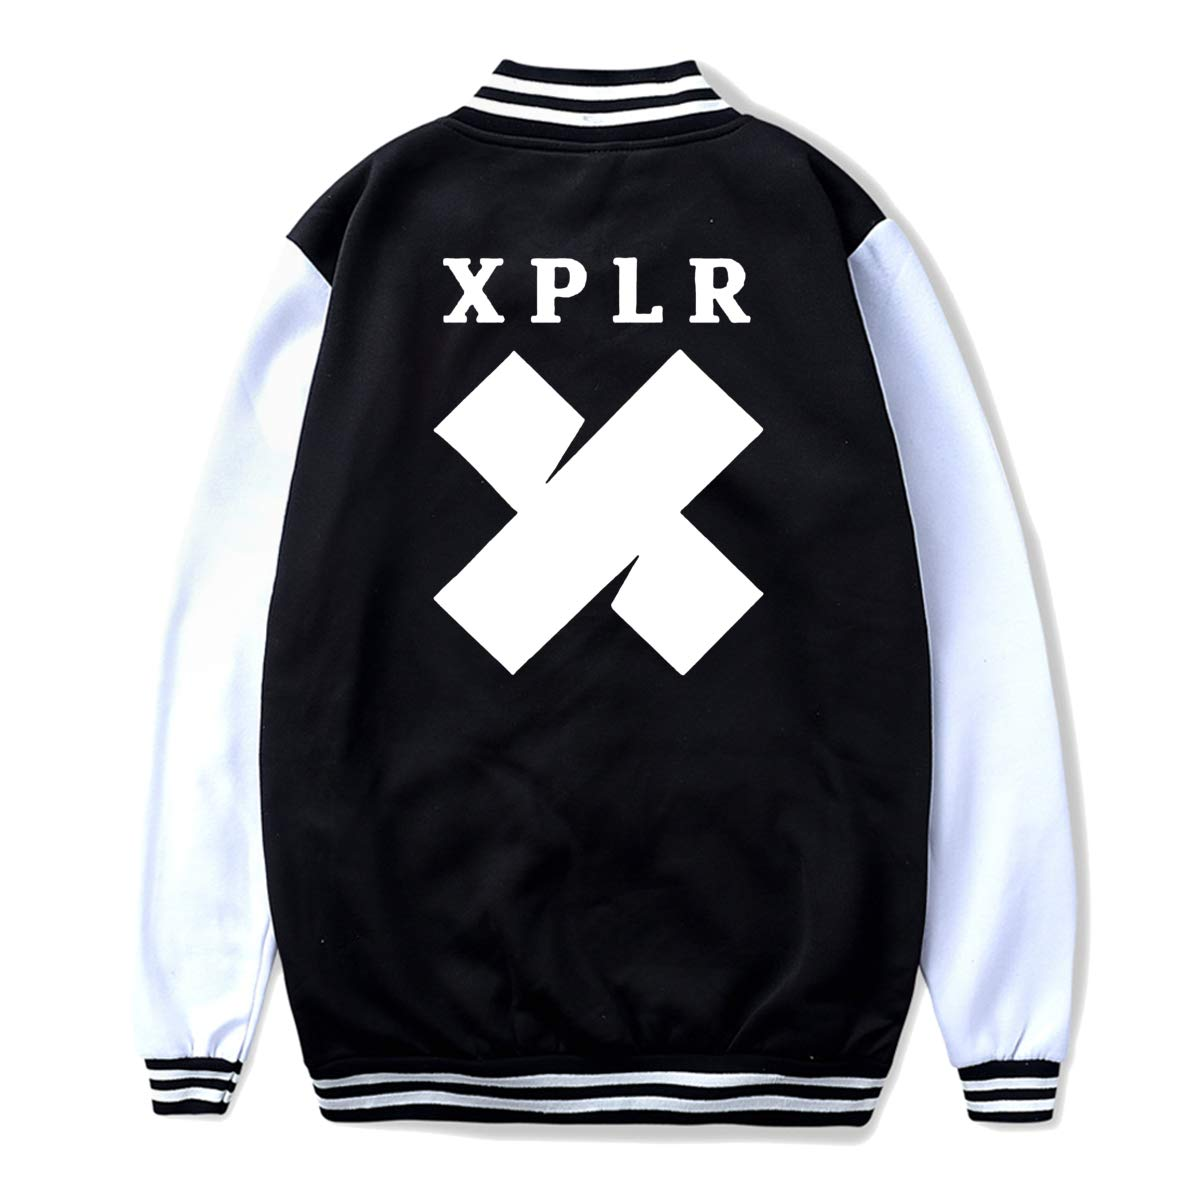 JAXX9 Youth Baseball Uniform Jacket Coat X-P-L-R Hoodie Sweater Coat for Boys Girls Black L